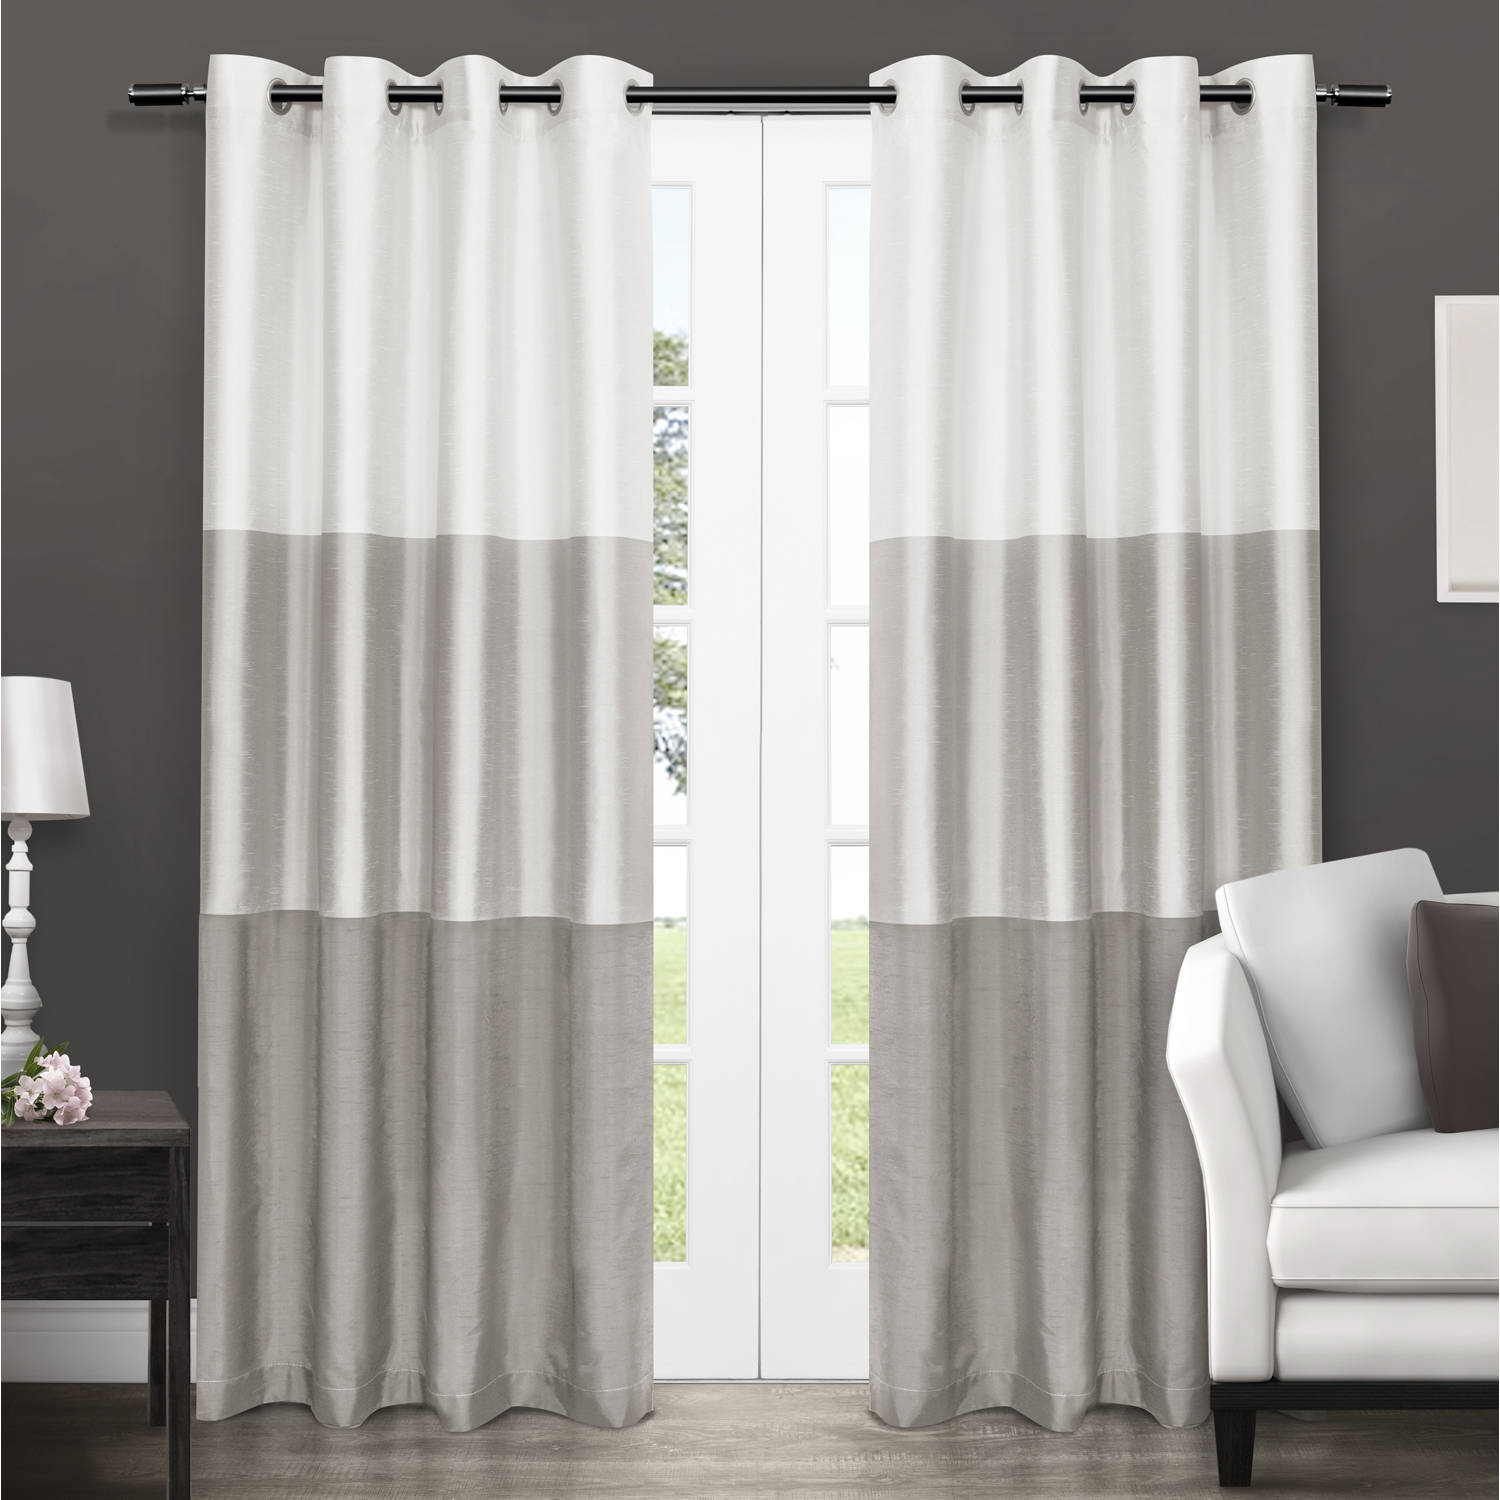 silk panels set wayfair raw grommet plant city curtains blackout solid thermal curtain keyword of